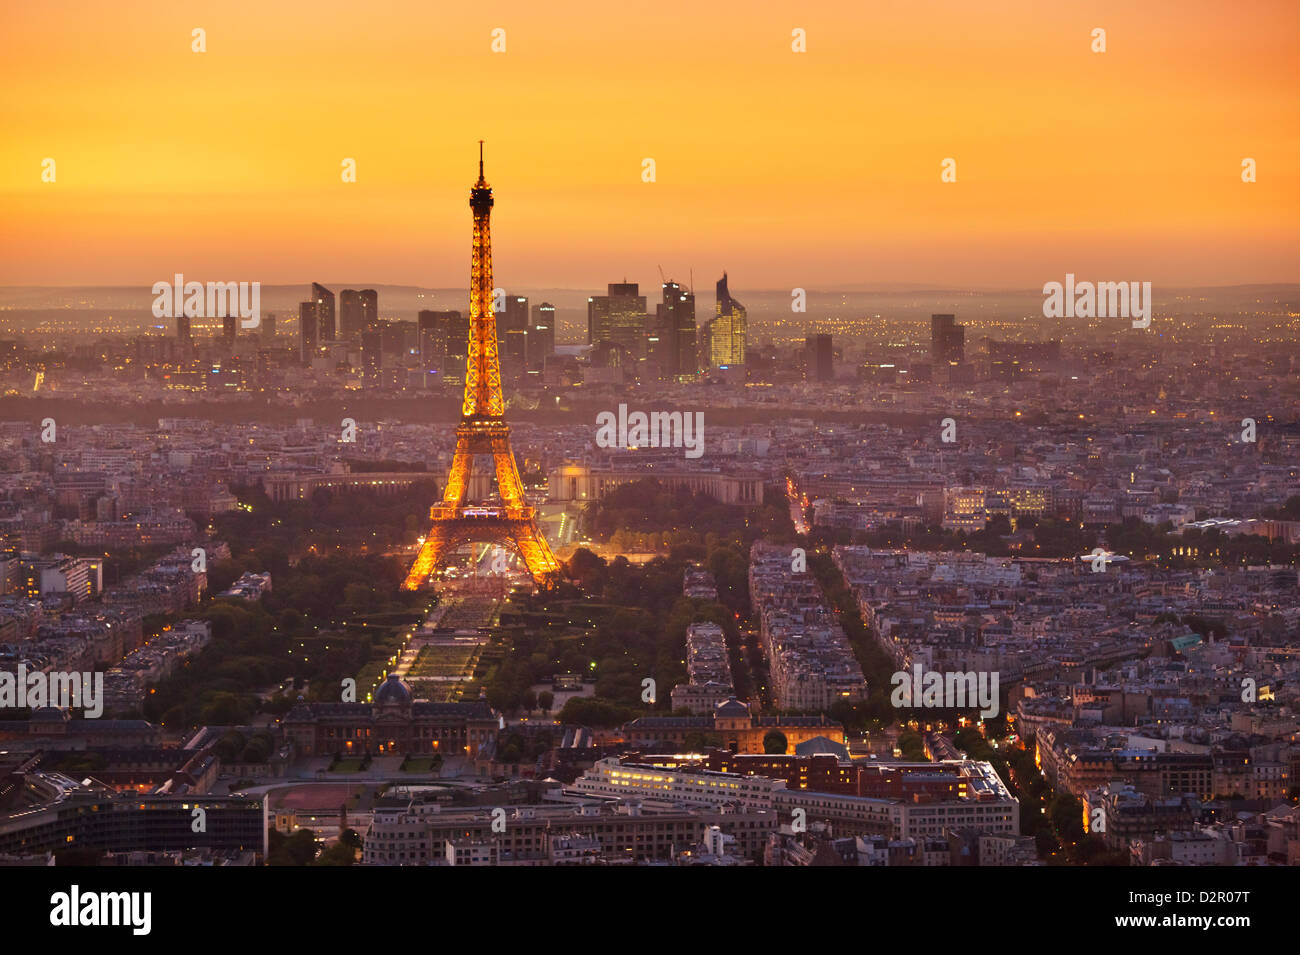 Paris skyline at sunset with the Eiffel Tower and La Defense, Paris, France, Europe - Stock Image